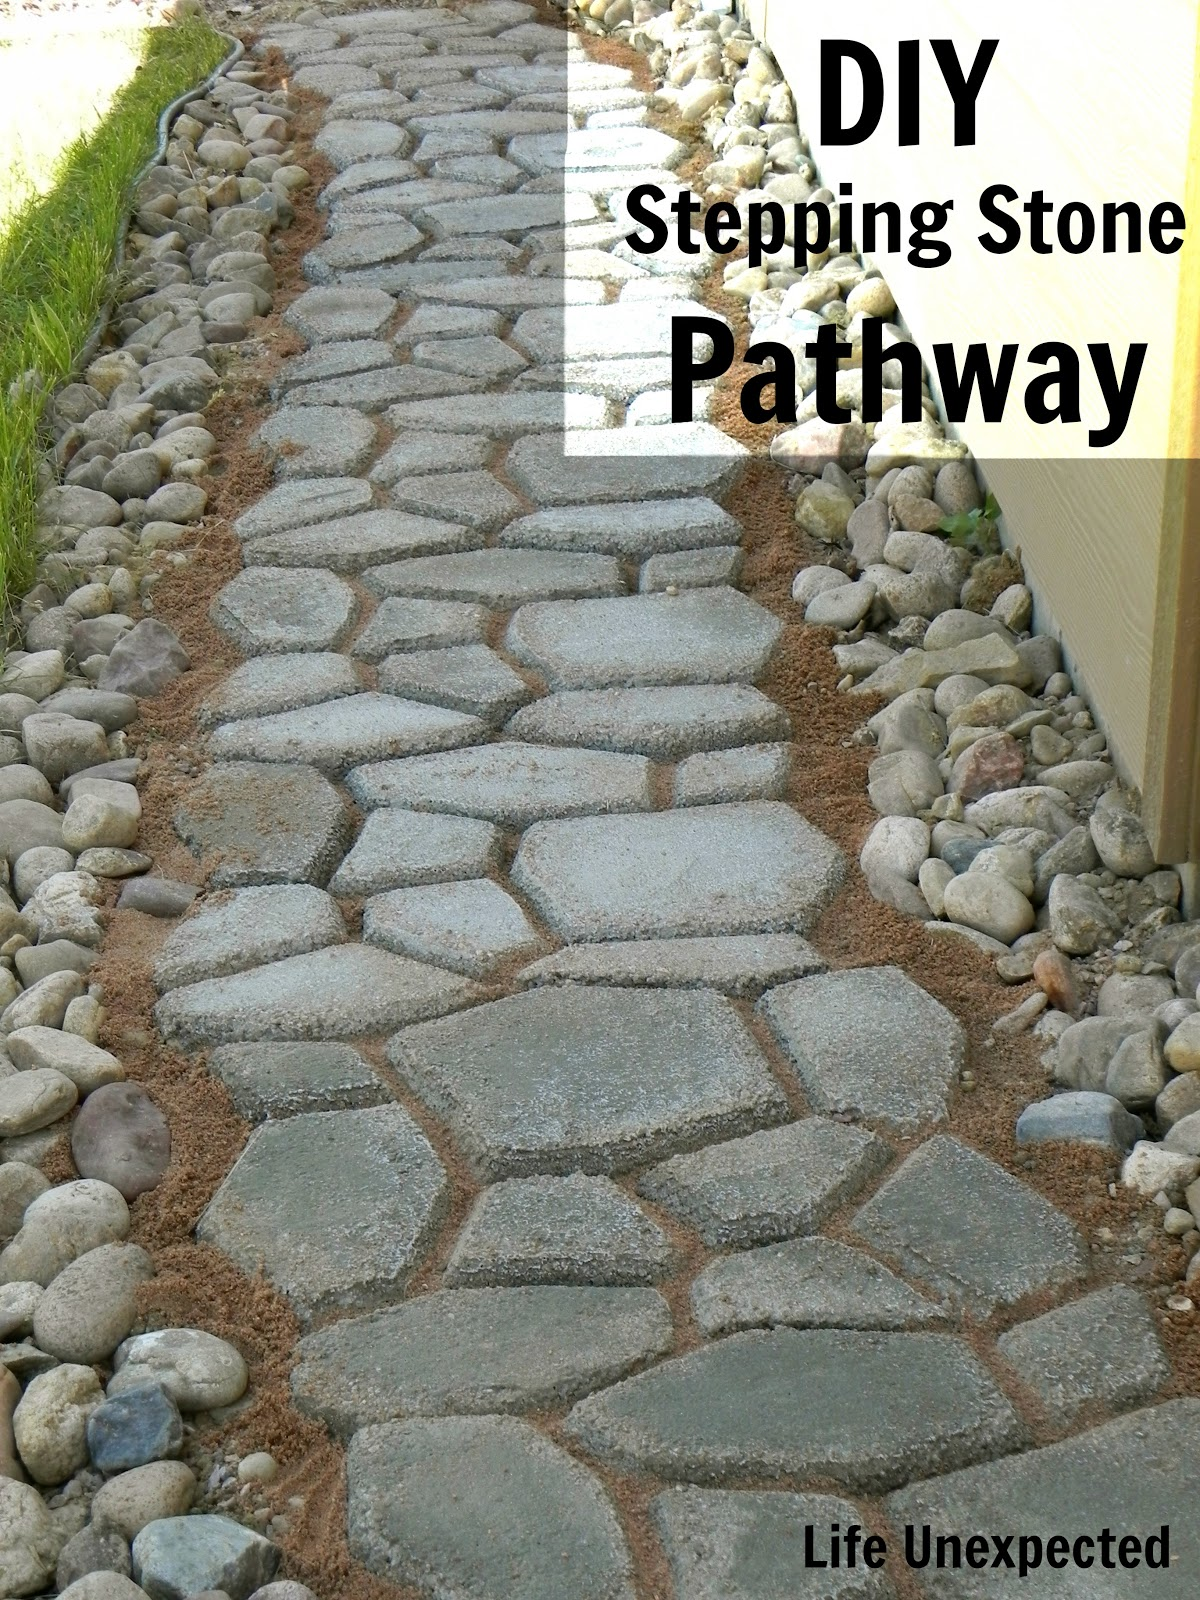 Life unexpected diy stepping stone pathway - Pictures of stone pathways ...